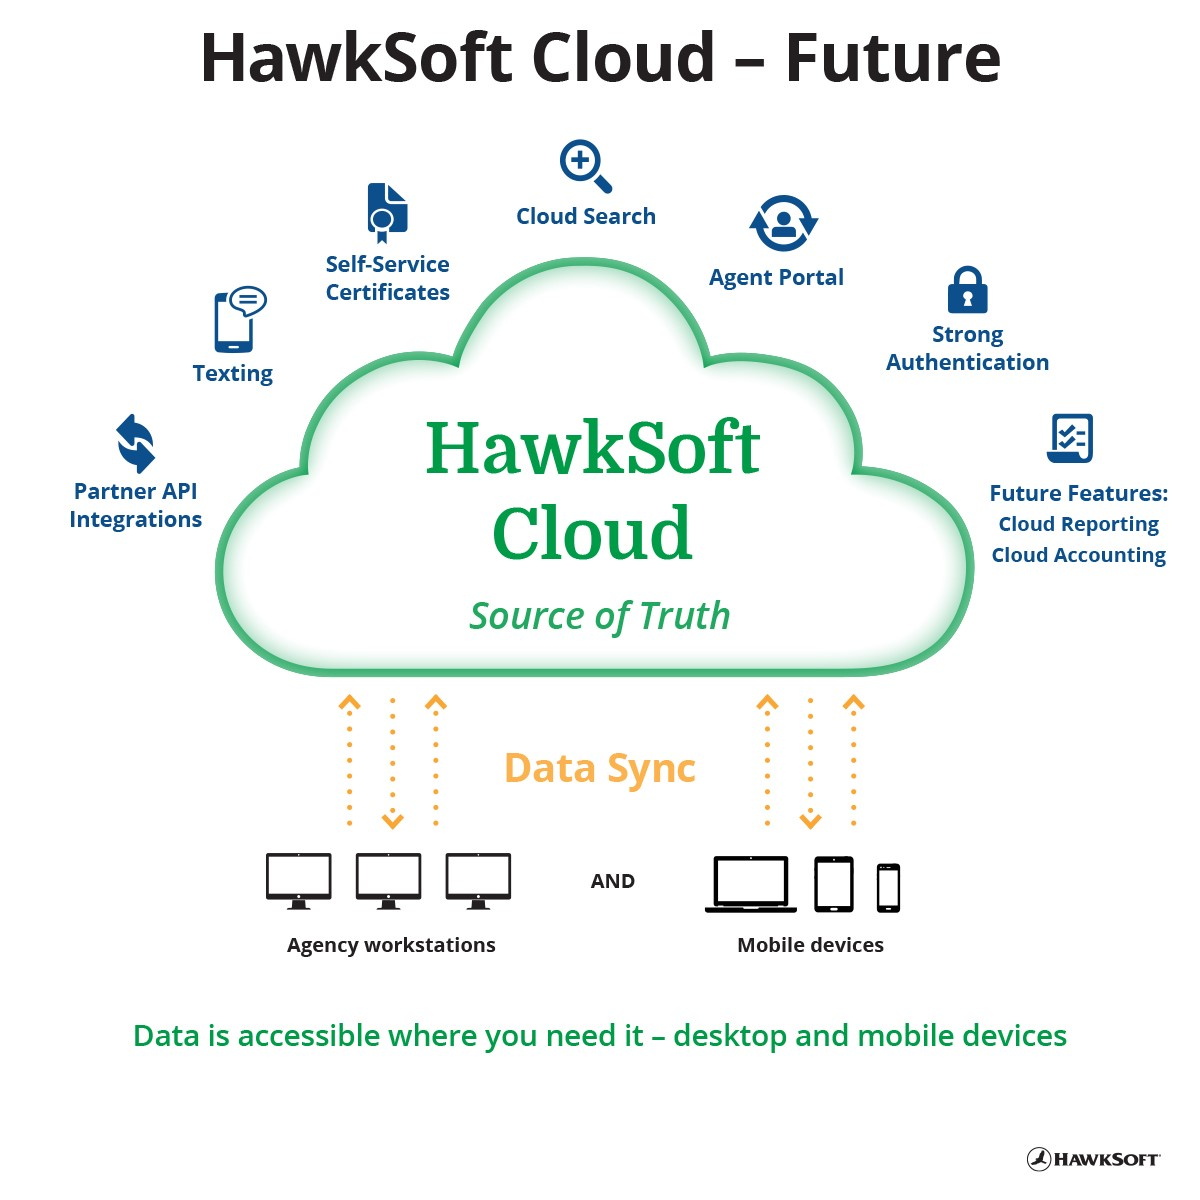 HawkSoft Cloud Diagram - Future